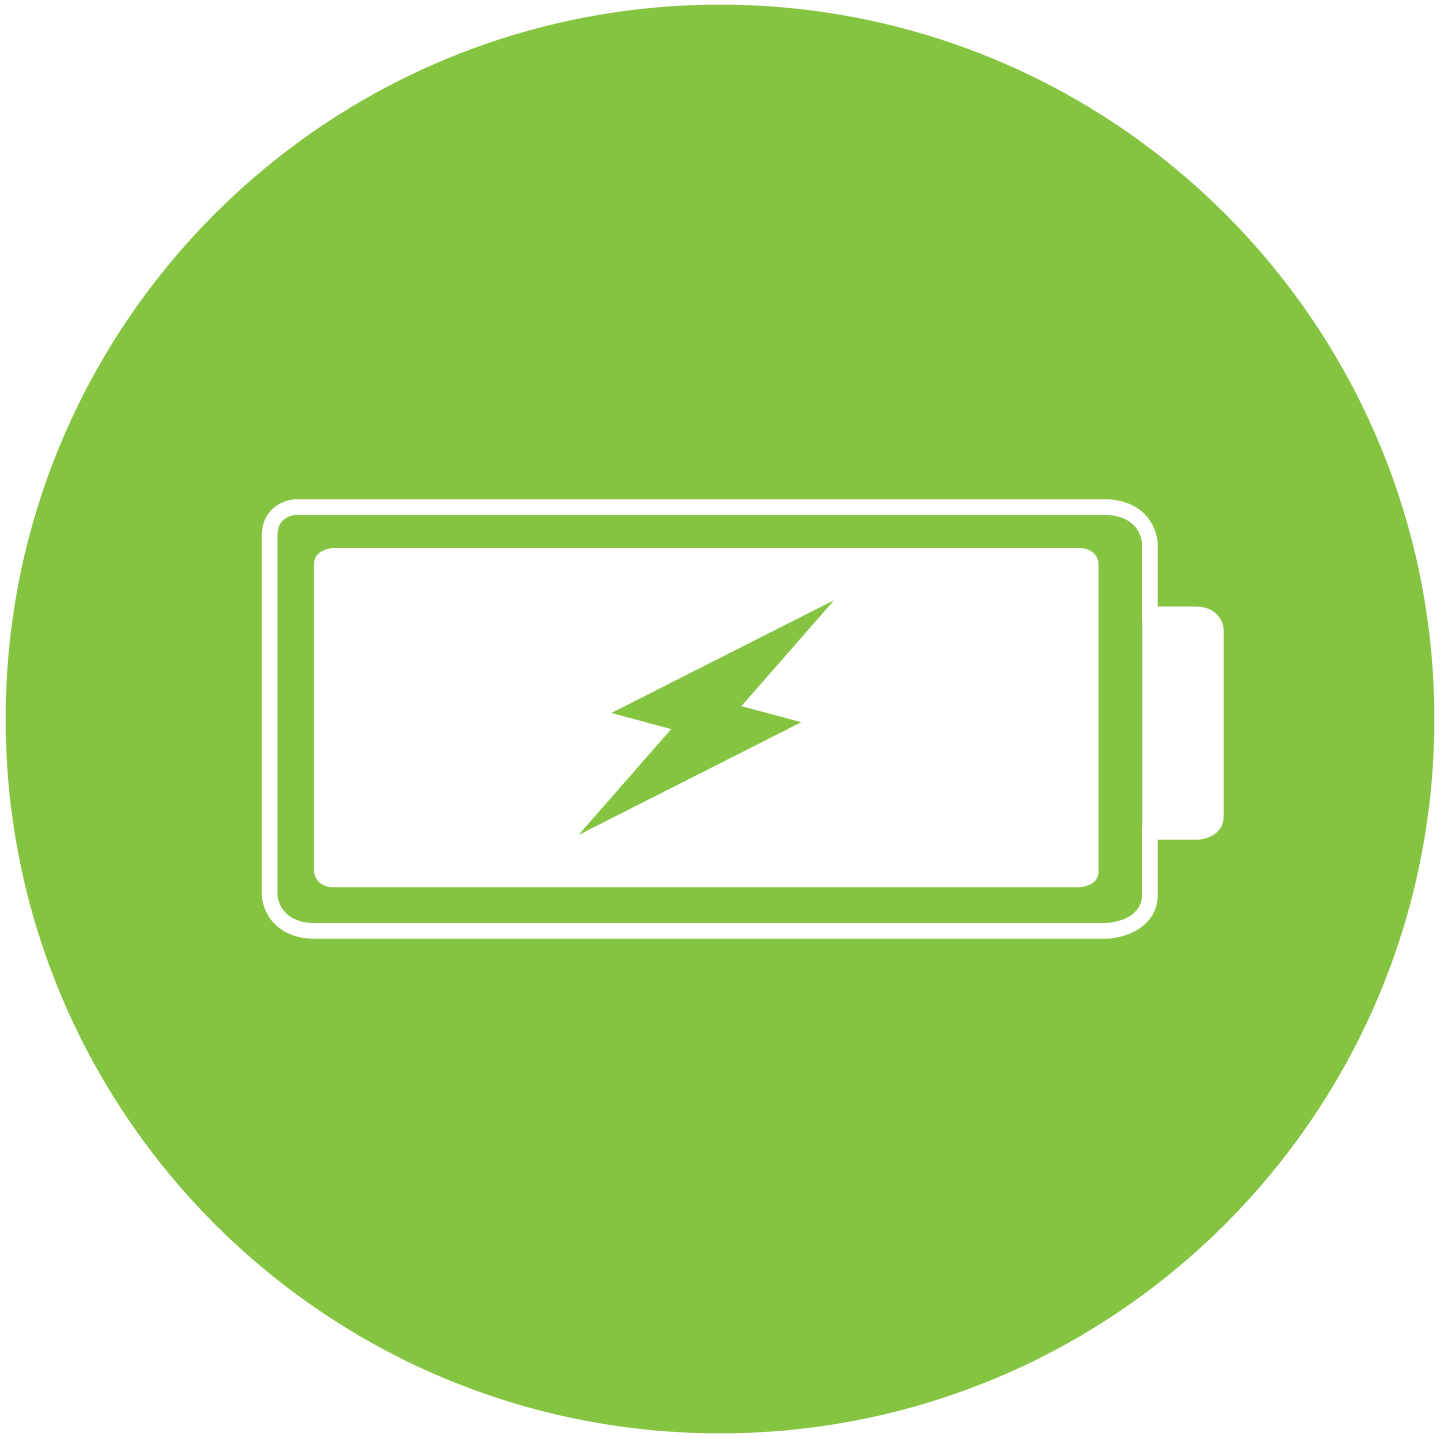 Battery Charging Png Pic PNG Image